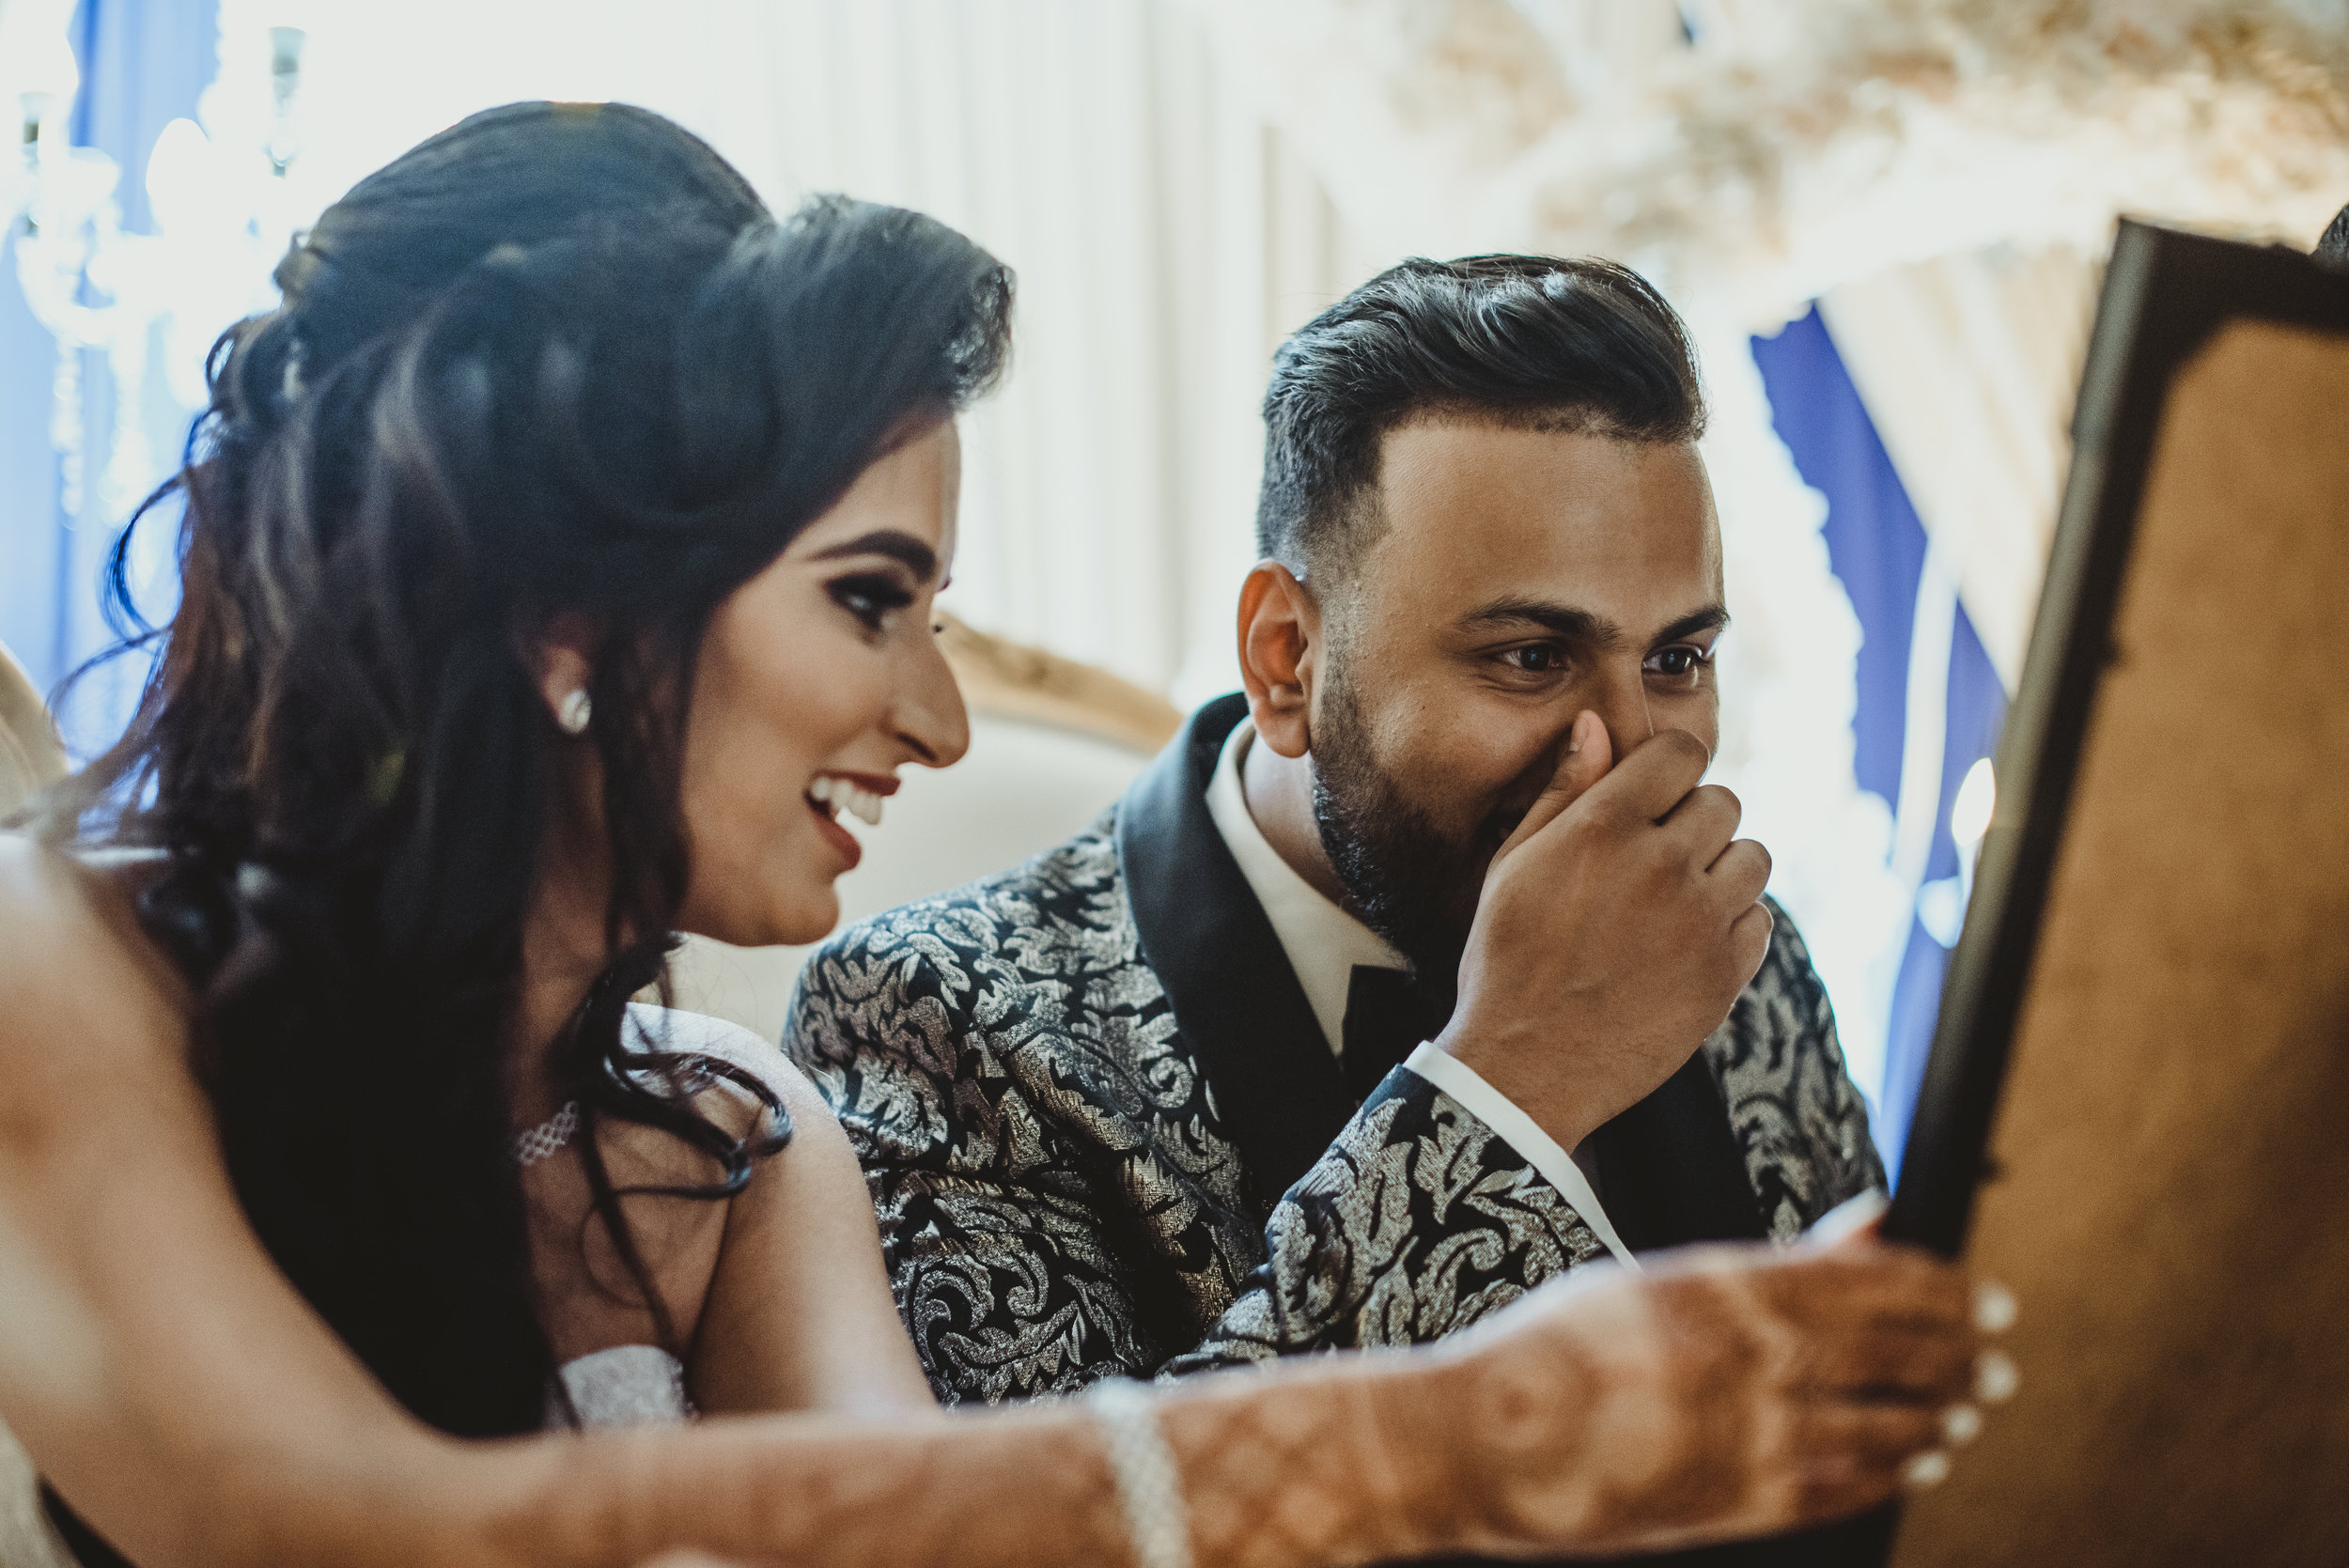 N&J_MILTON_KEYNES_WEDDING_LONDON_PHOTOGRAPHER_ASIAN_WEDDING-1030.JPG